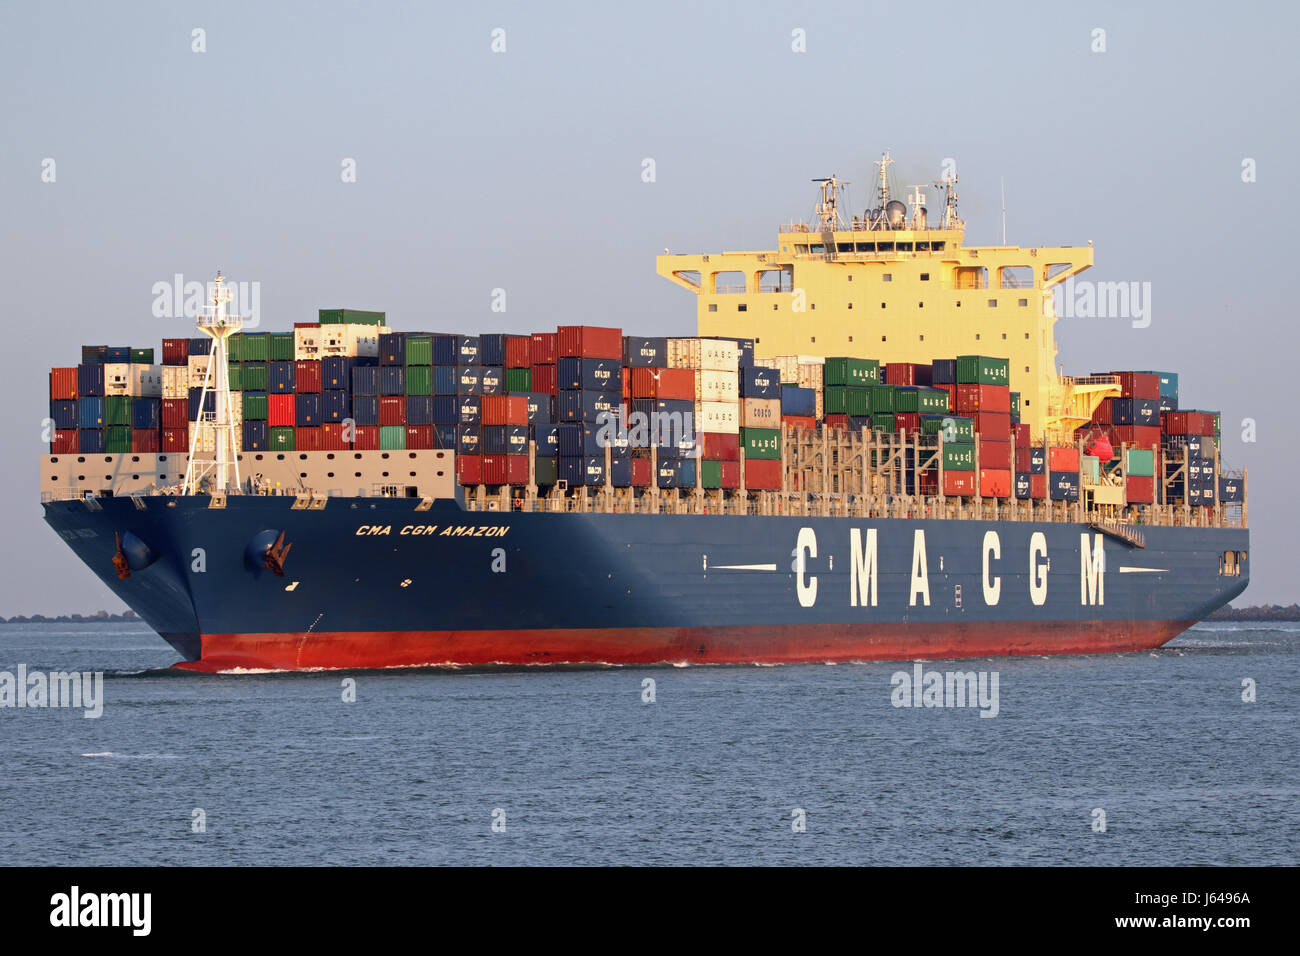 The container ship CMA CGM Amazon leaves the port of Rotterdam - Stock Image